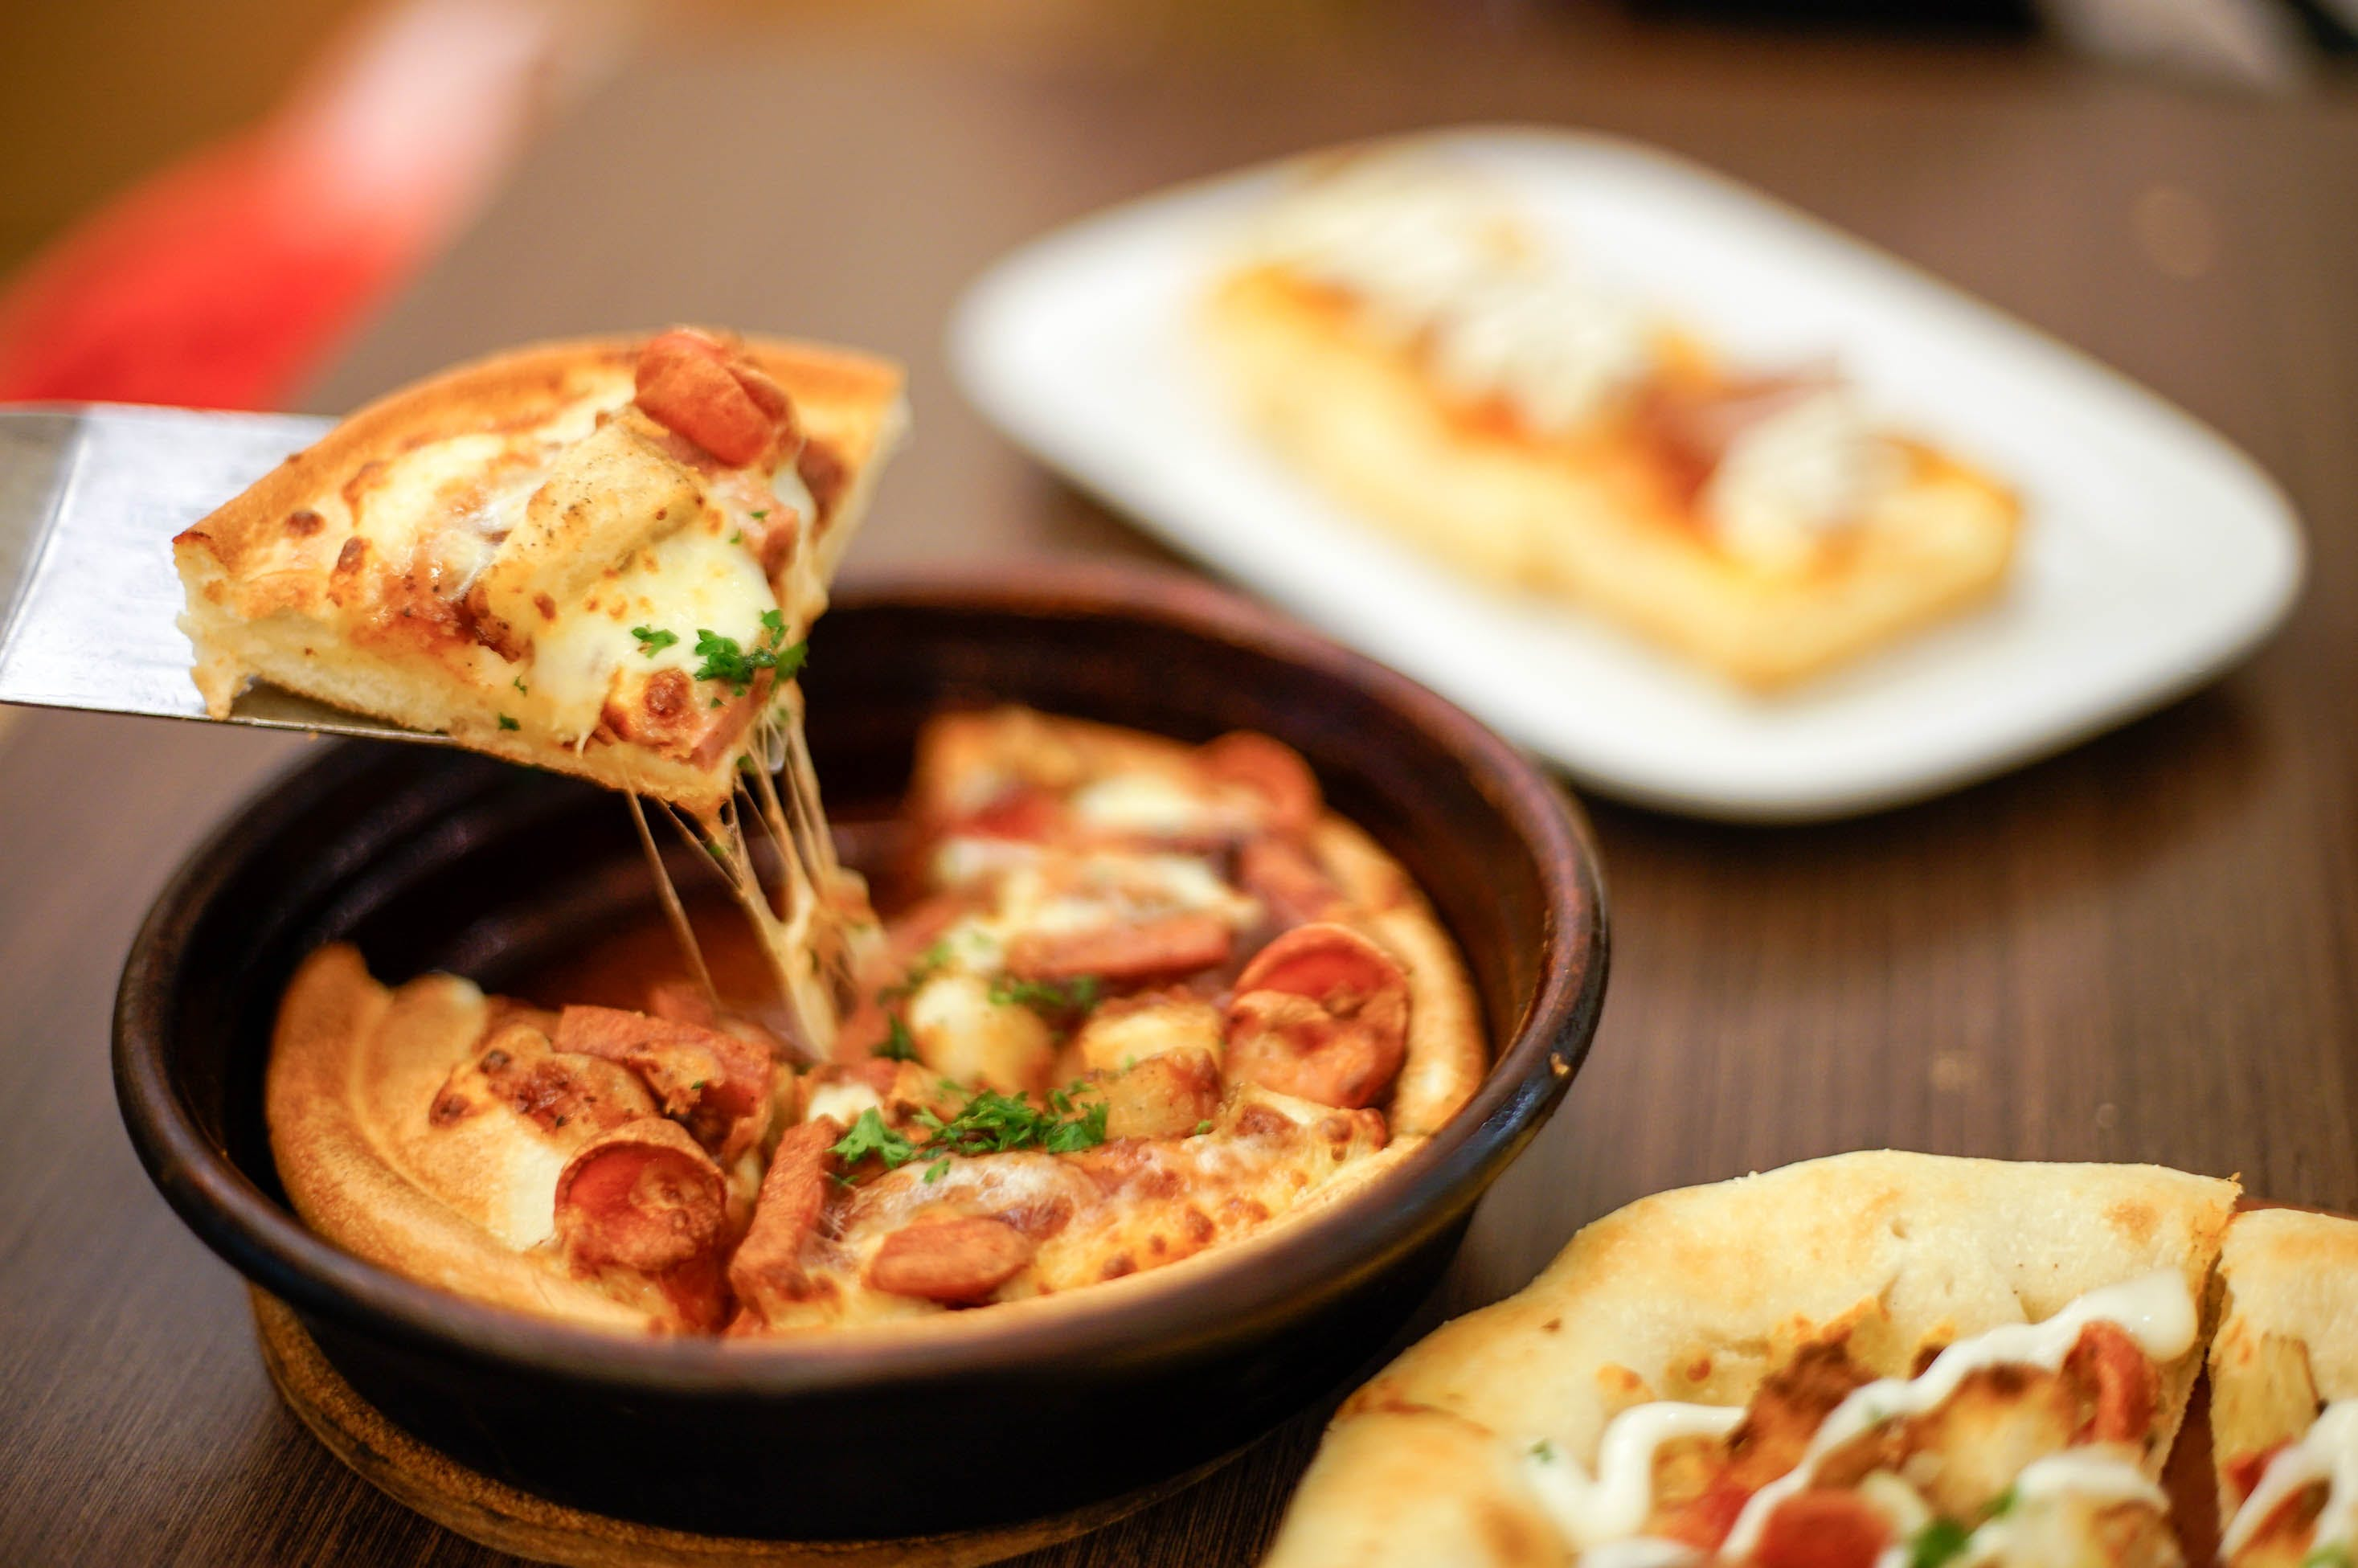 Free stock photo of #pizza #food #bokeh #chesee #meltingchesee